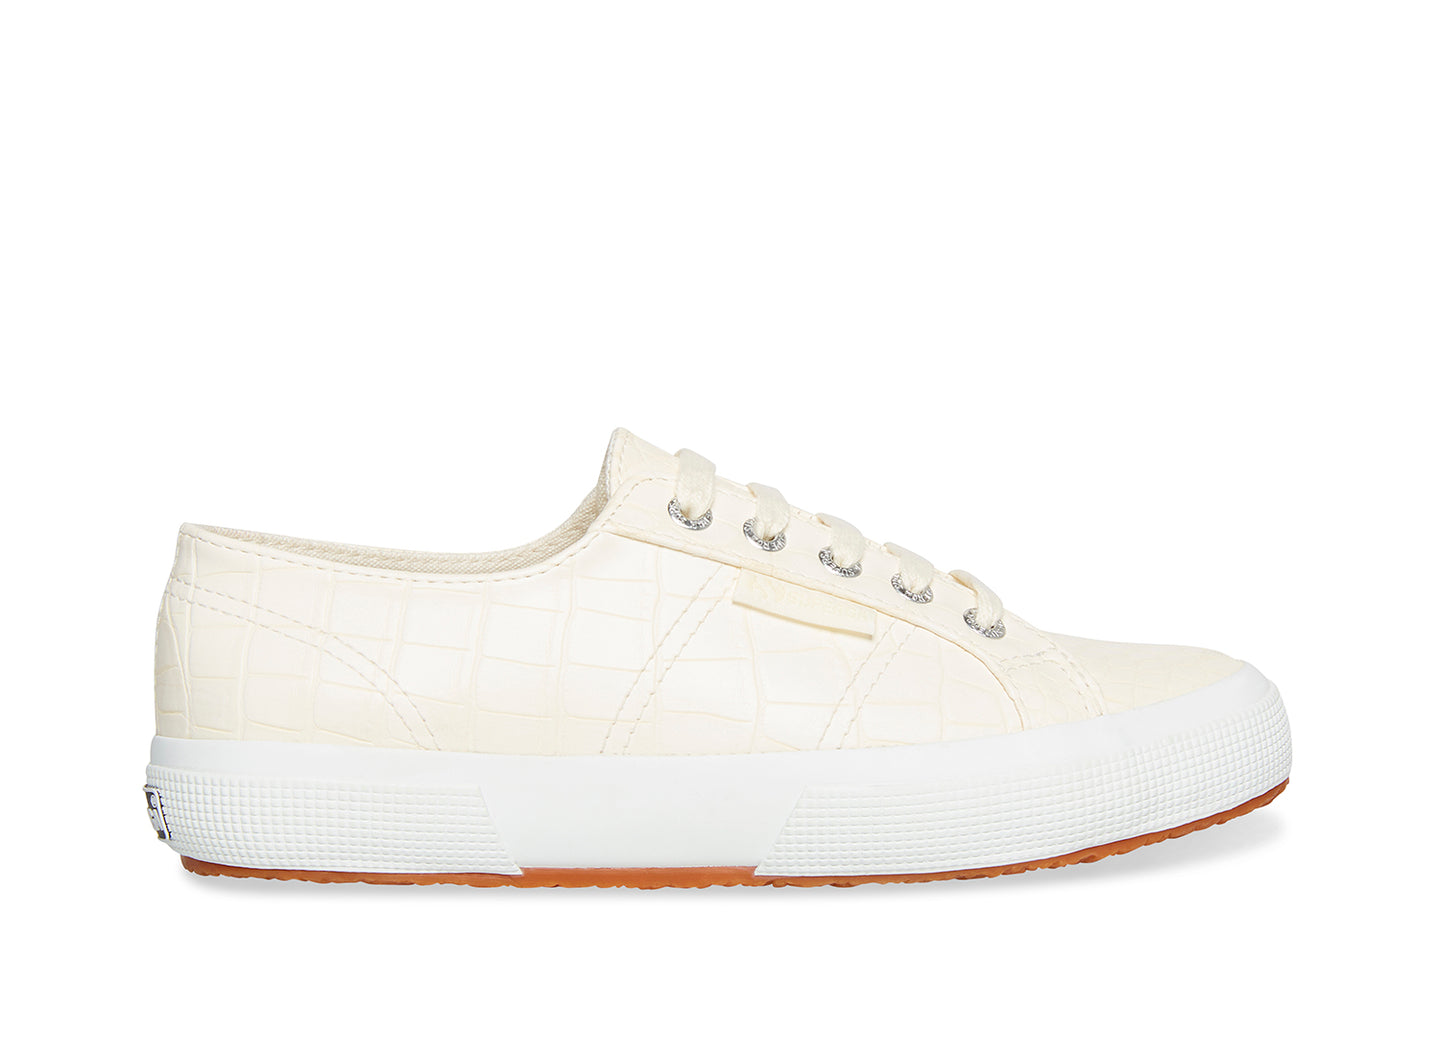 2750-SYNTCROCODILEW TL WHITE CROCODILE - Women's